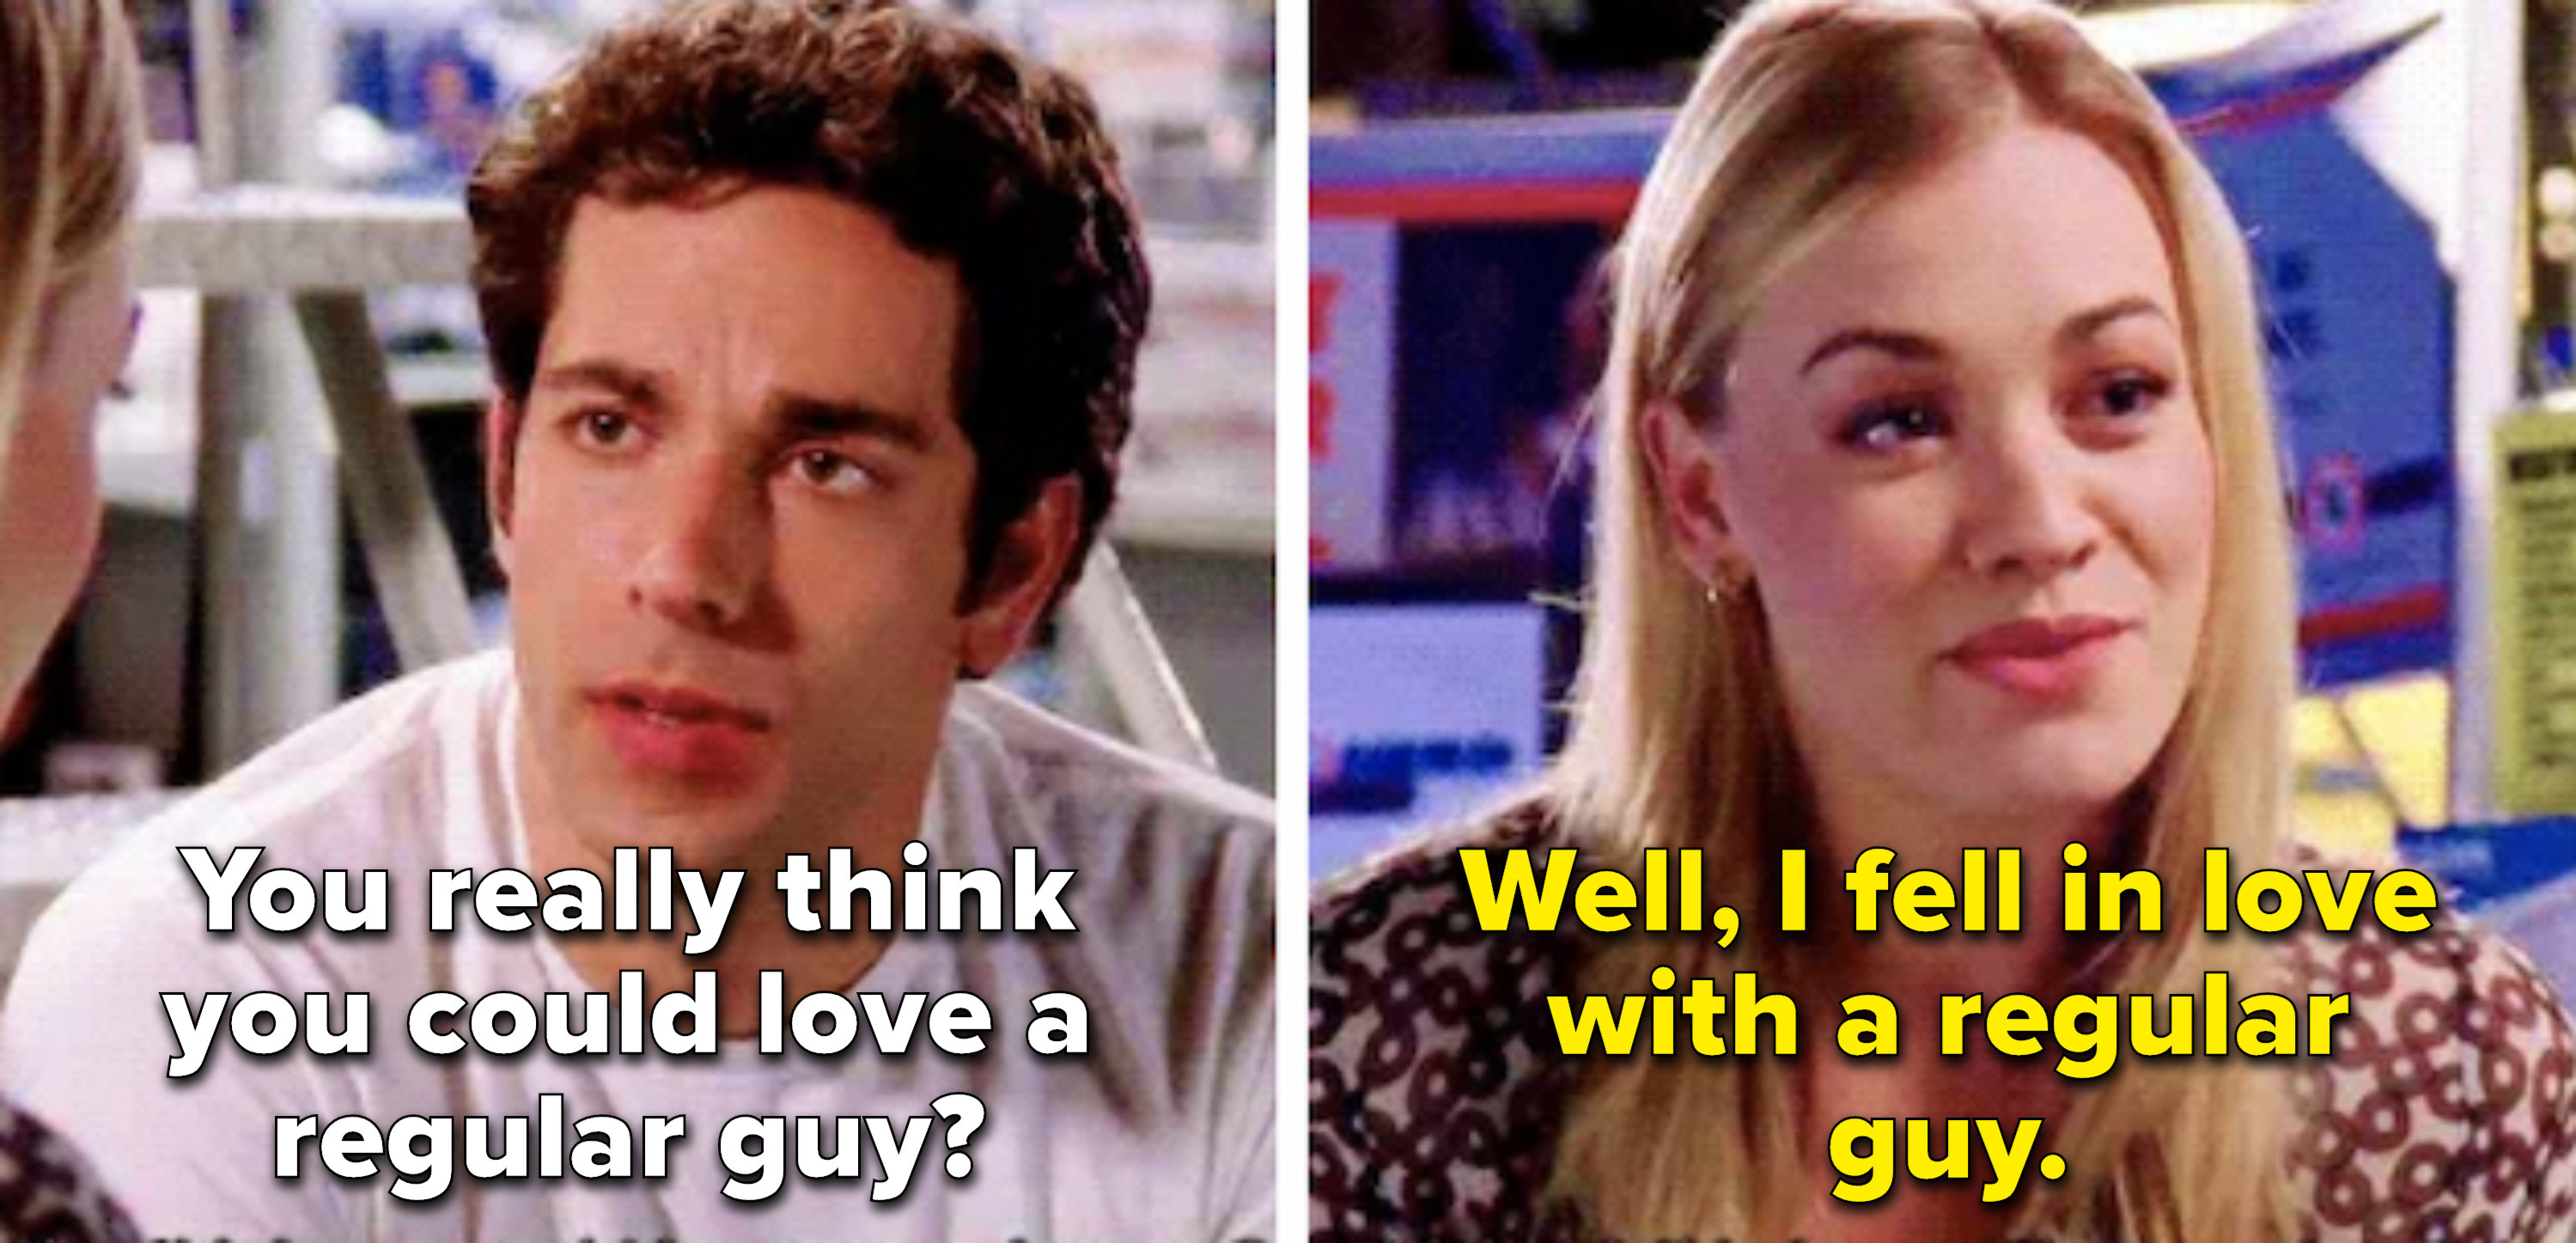 Chuck asks if Sarah could love a regular guy, and she says she fell in love with one